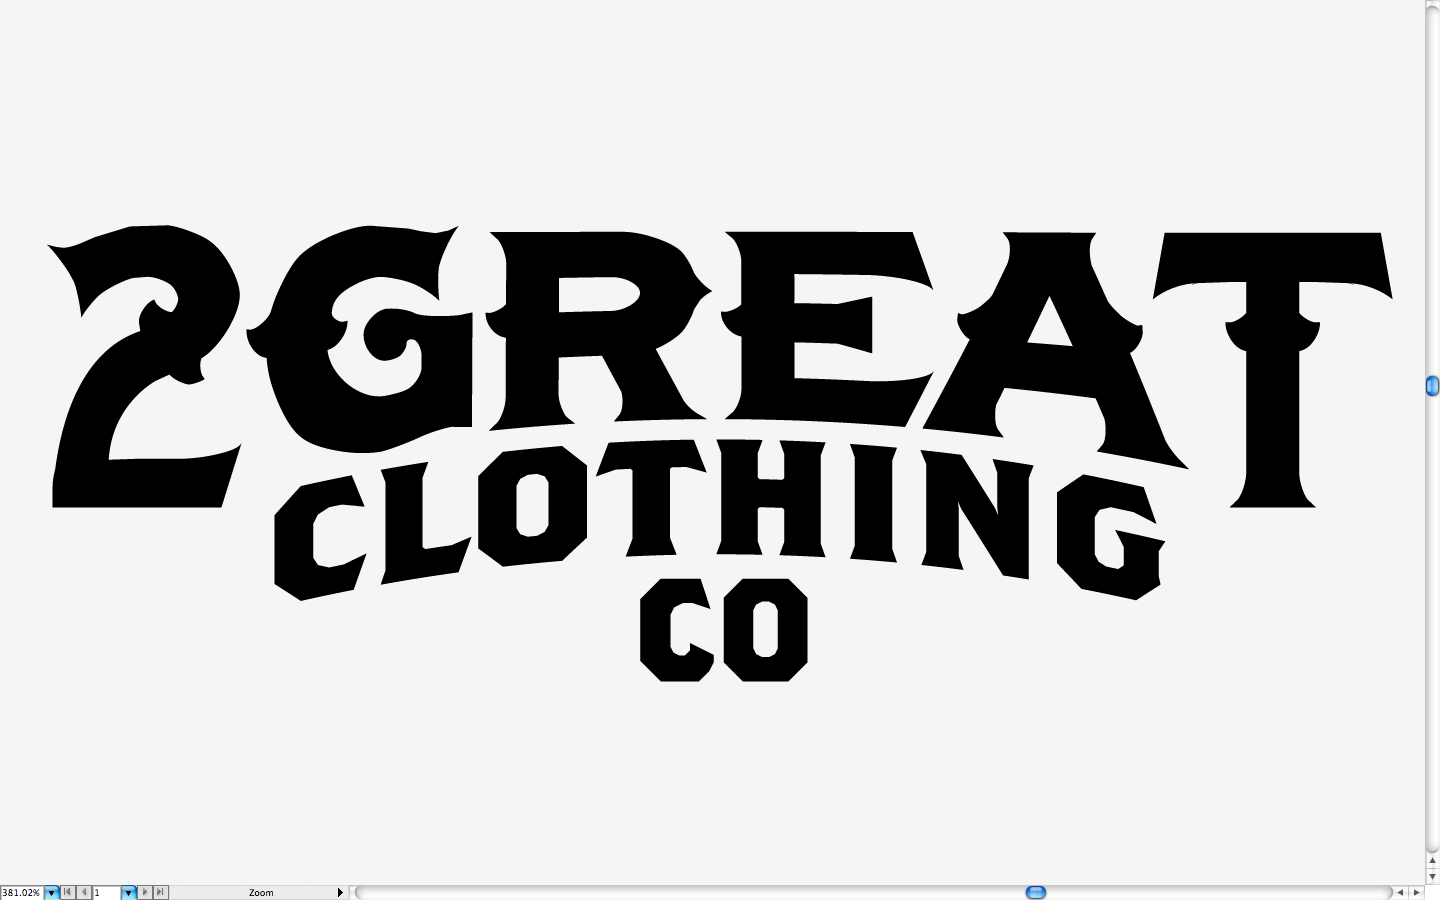 2Great Clothing Co. - image 25 - student project